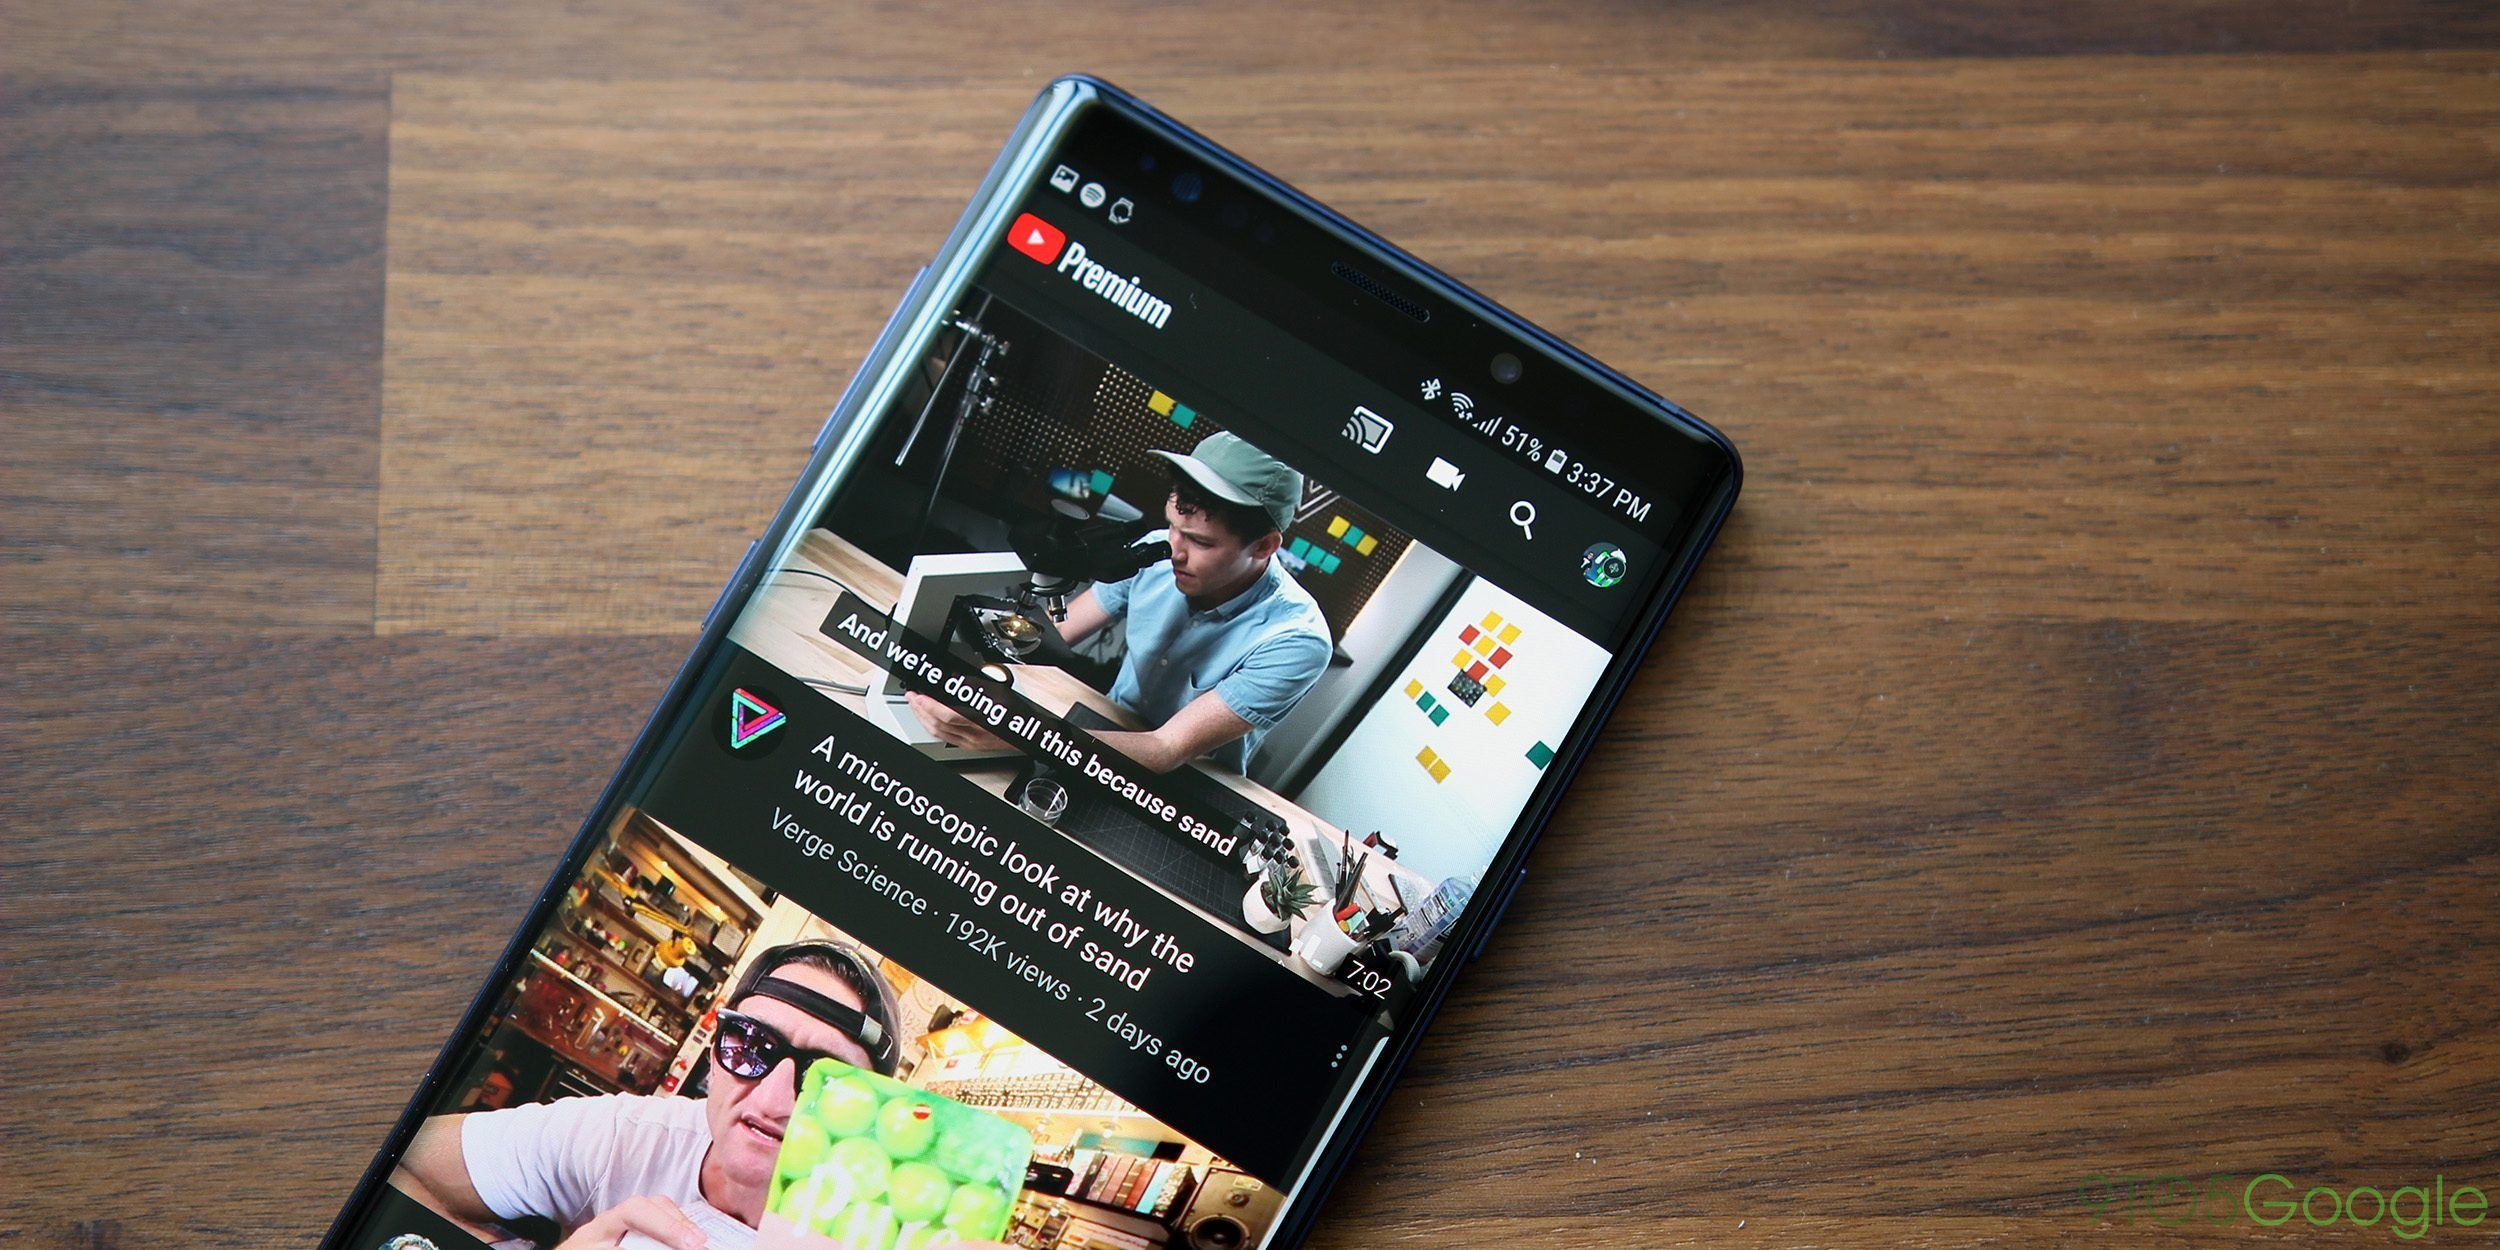 YouTube testing movie showtimes, app installs, and more